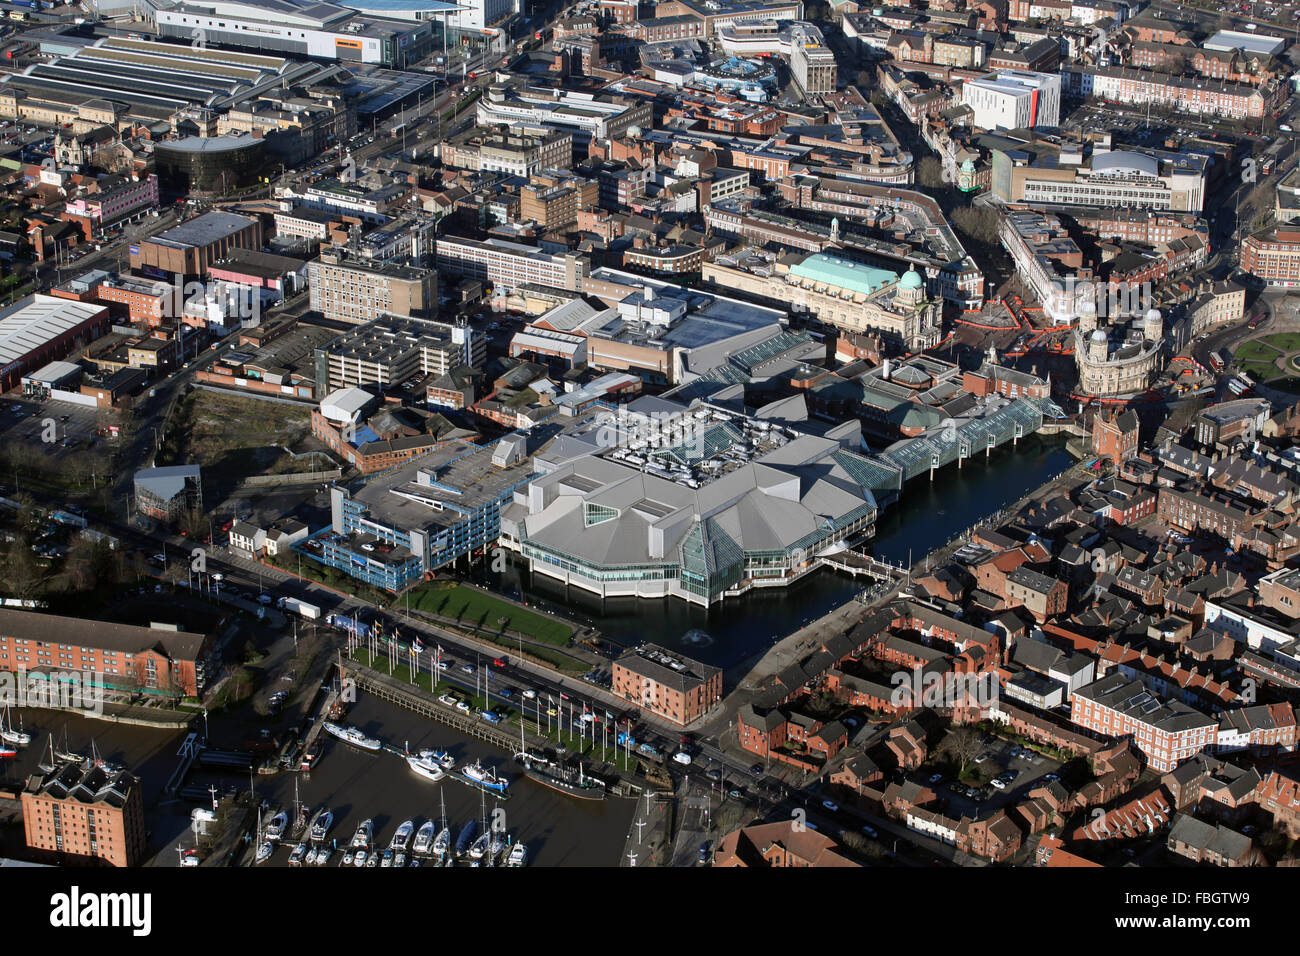 aerial view of Princess Quay Shopping Centre in Hull, UK - Stock Image